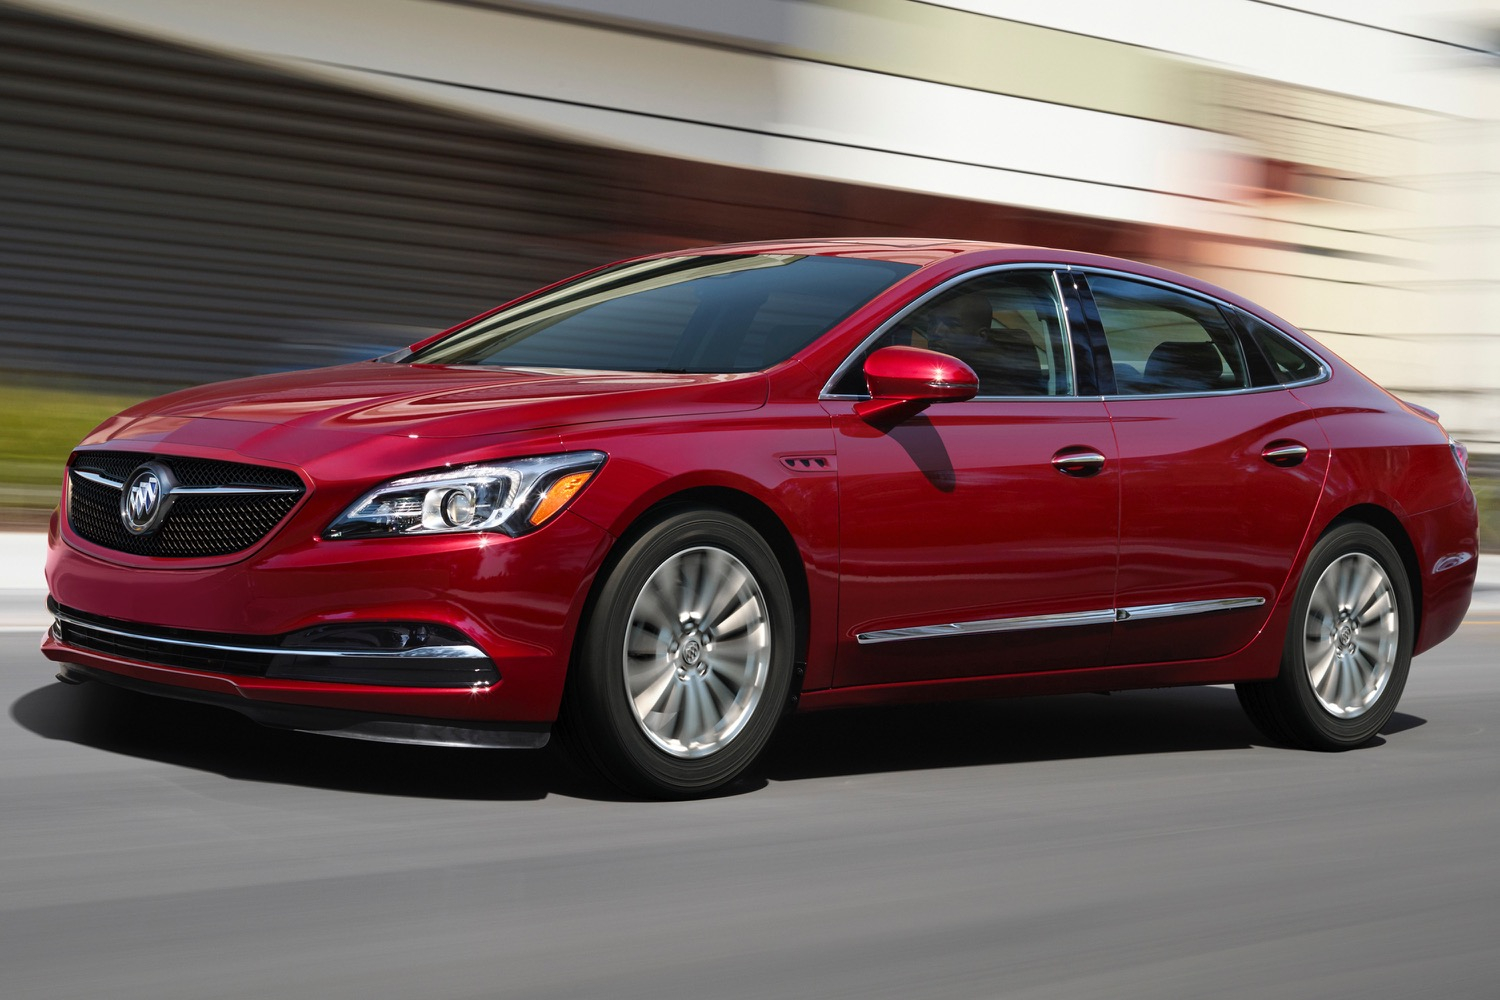 Buick Lacrosse Discount Totals $9,000 February 2020 | Gm 2021 Buick Lacrosse Lease Deals, Engine, Price